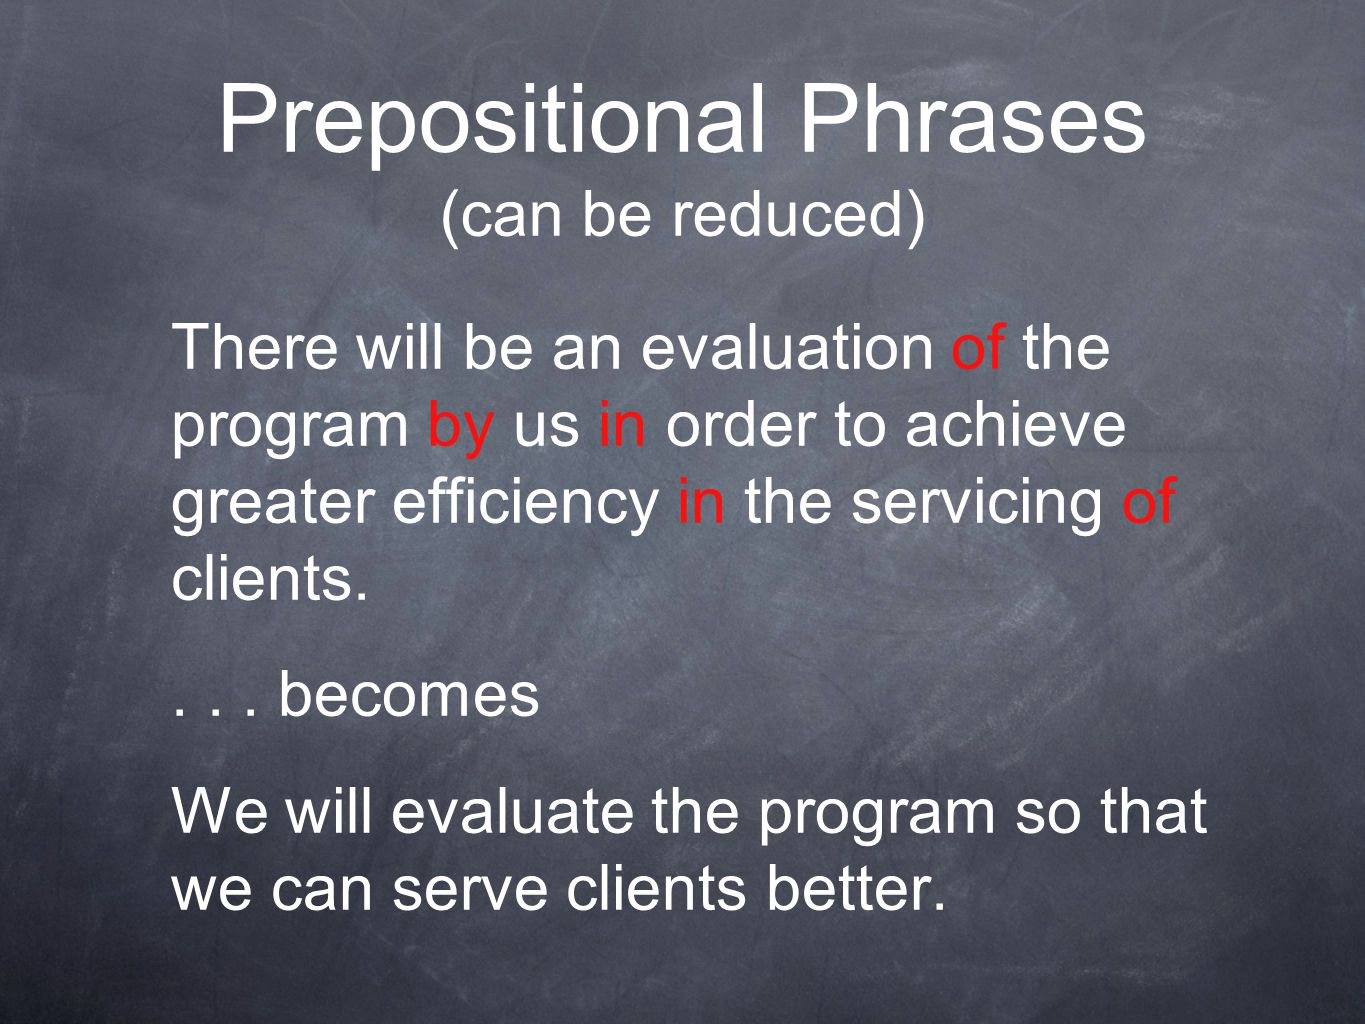 Prepositional Phrases (can be reduced) There will be an evaluation of the program by us in order to achieve greater efficiency in the servicing of clients....